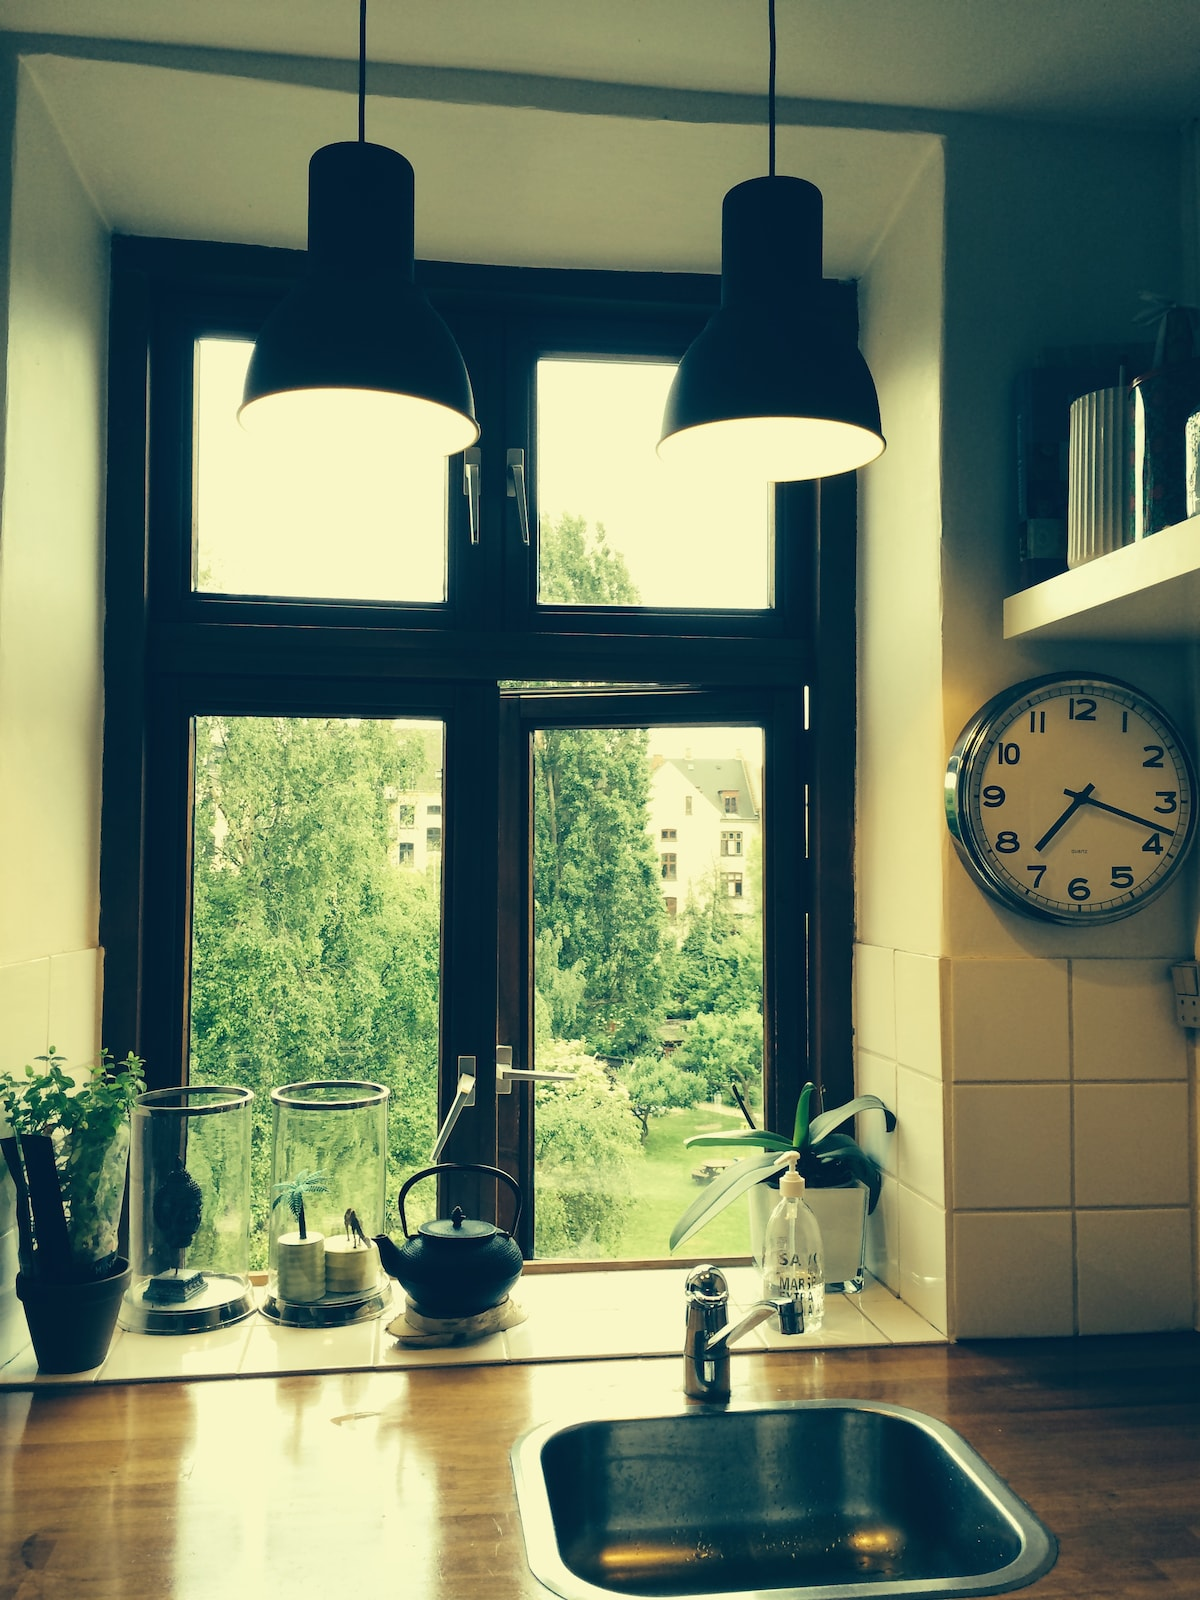 Cosy kitchen view.